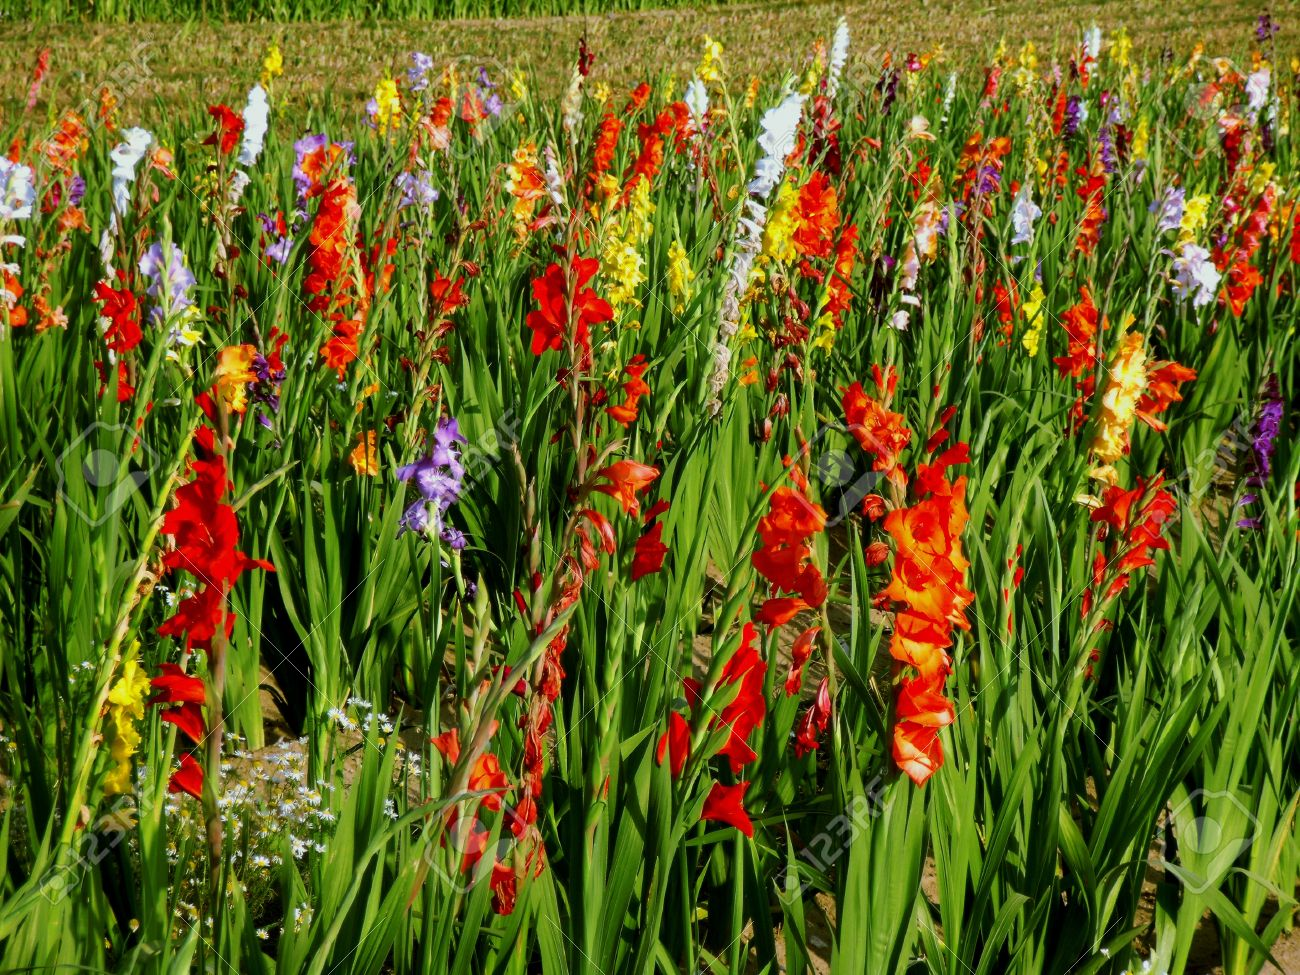 Gladiolas in field